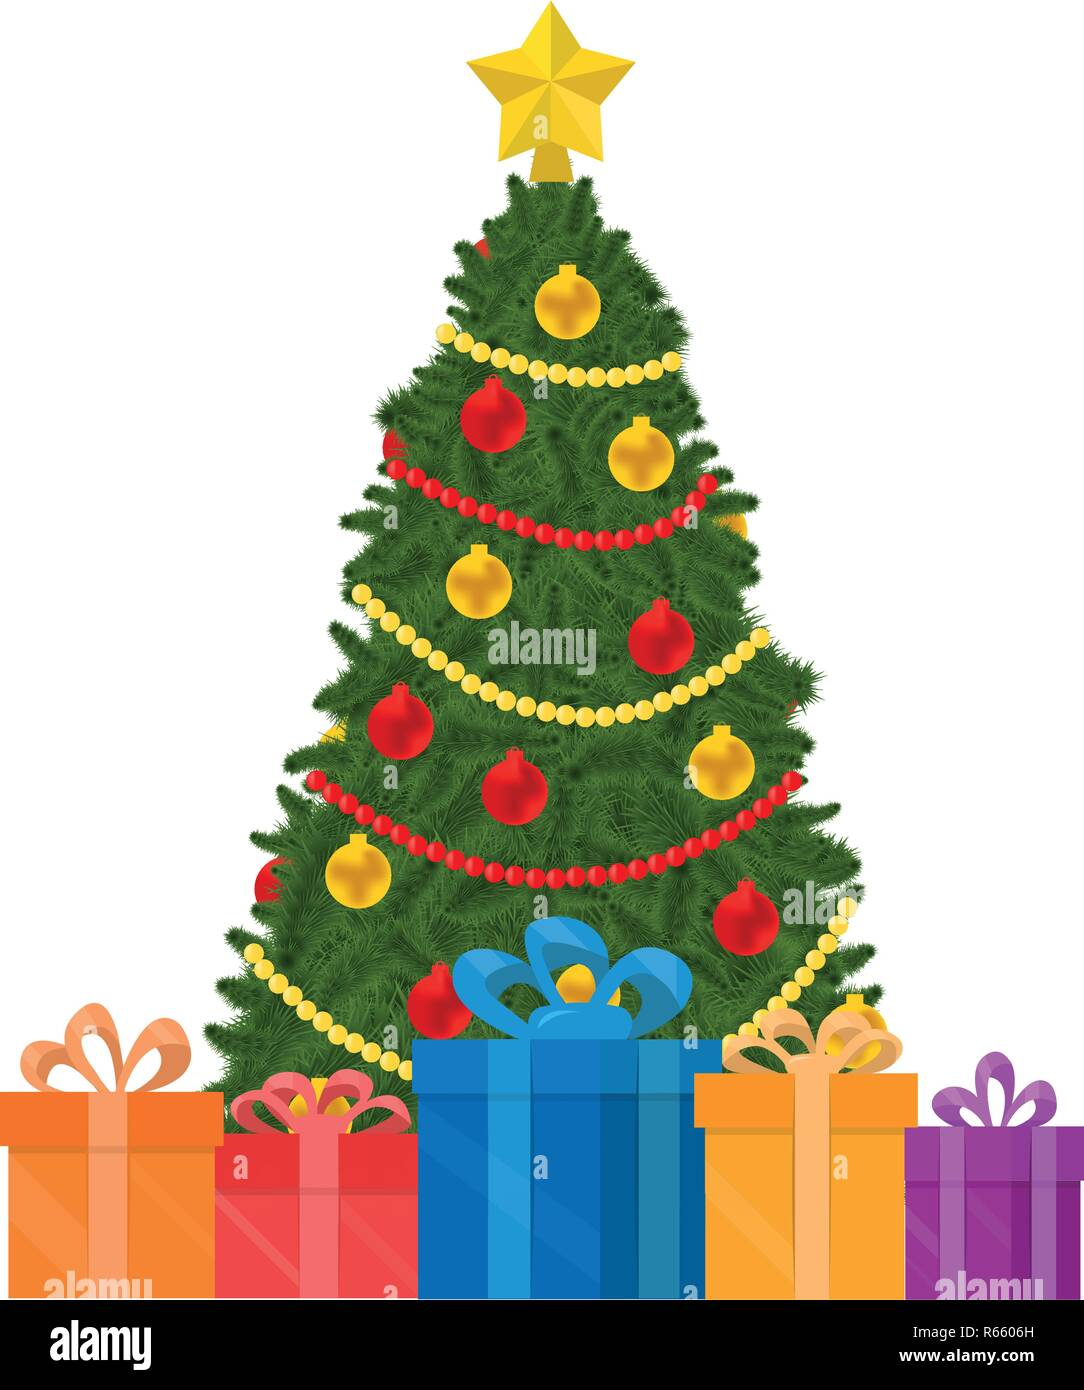 Christmas Tree Vector Image.Christmas Tree Decoration Gift Boxes Under The Tree Vector